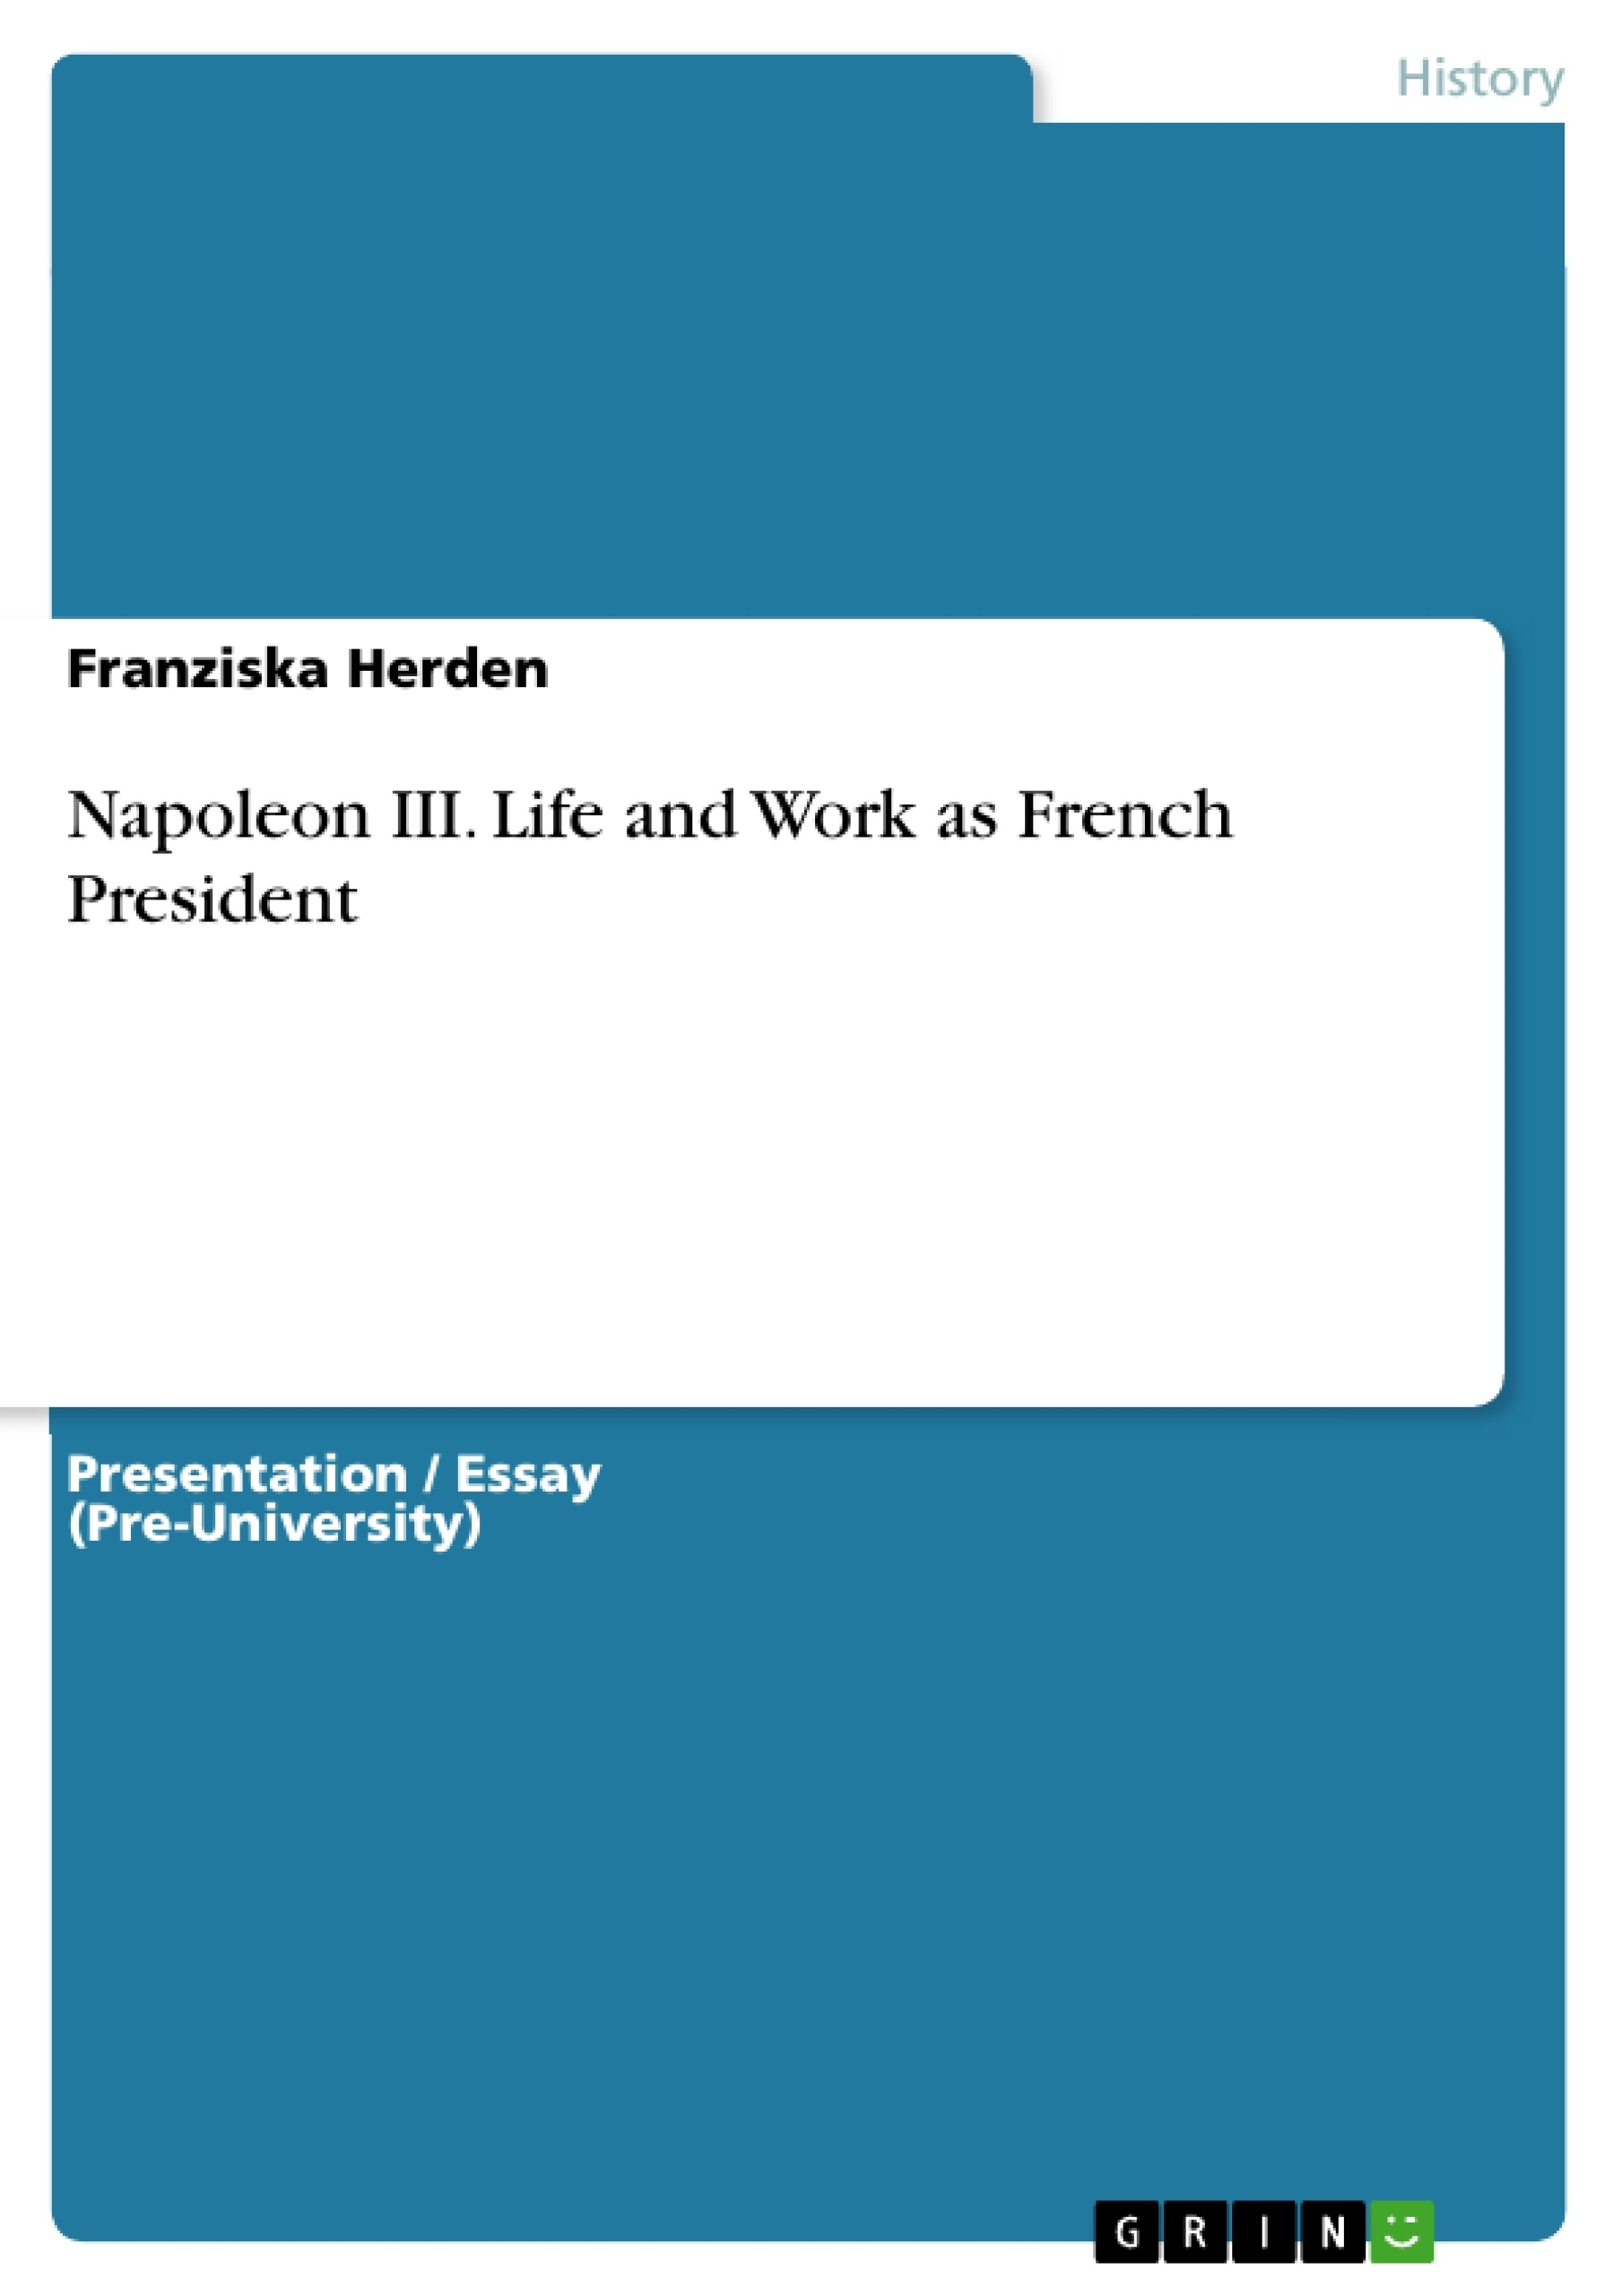 Title: Napoleon III. Life and Work as French President